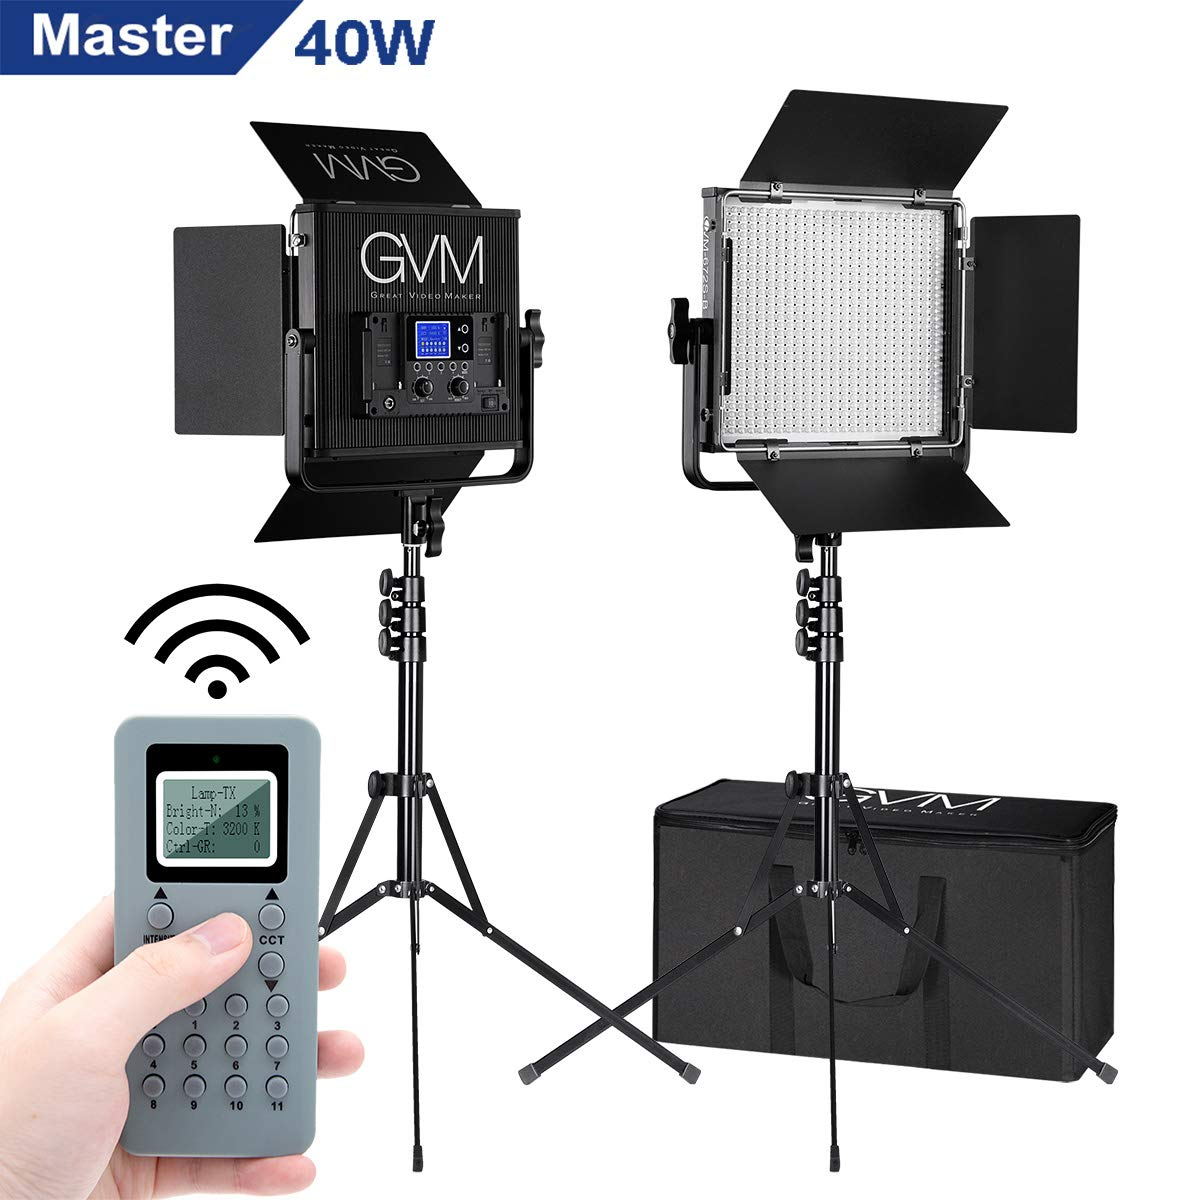 GVM 672S Master Series LED Video Lighting Kit with Stand and Wireless Intelligent Remote Control CRI97 Dimmable 3200K-5600K Video Lights for YouTube Studio Photography Outdoor Video Shooting (2 Pack) by GVM Great Video Maker